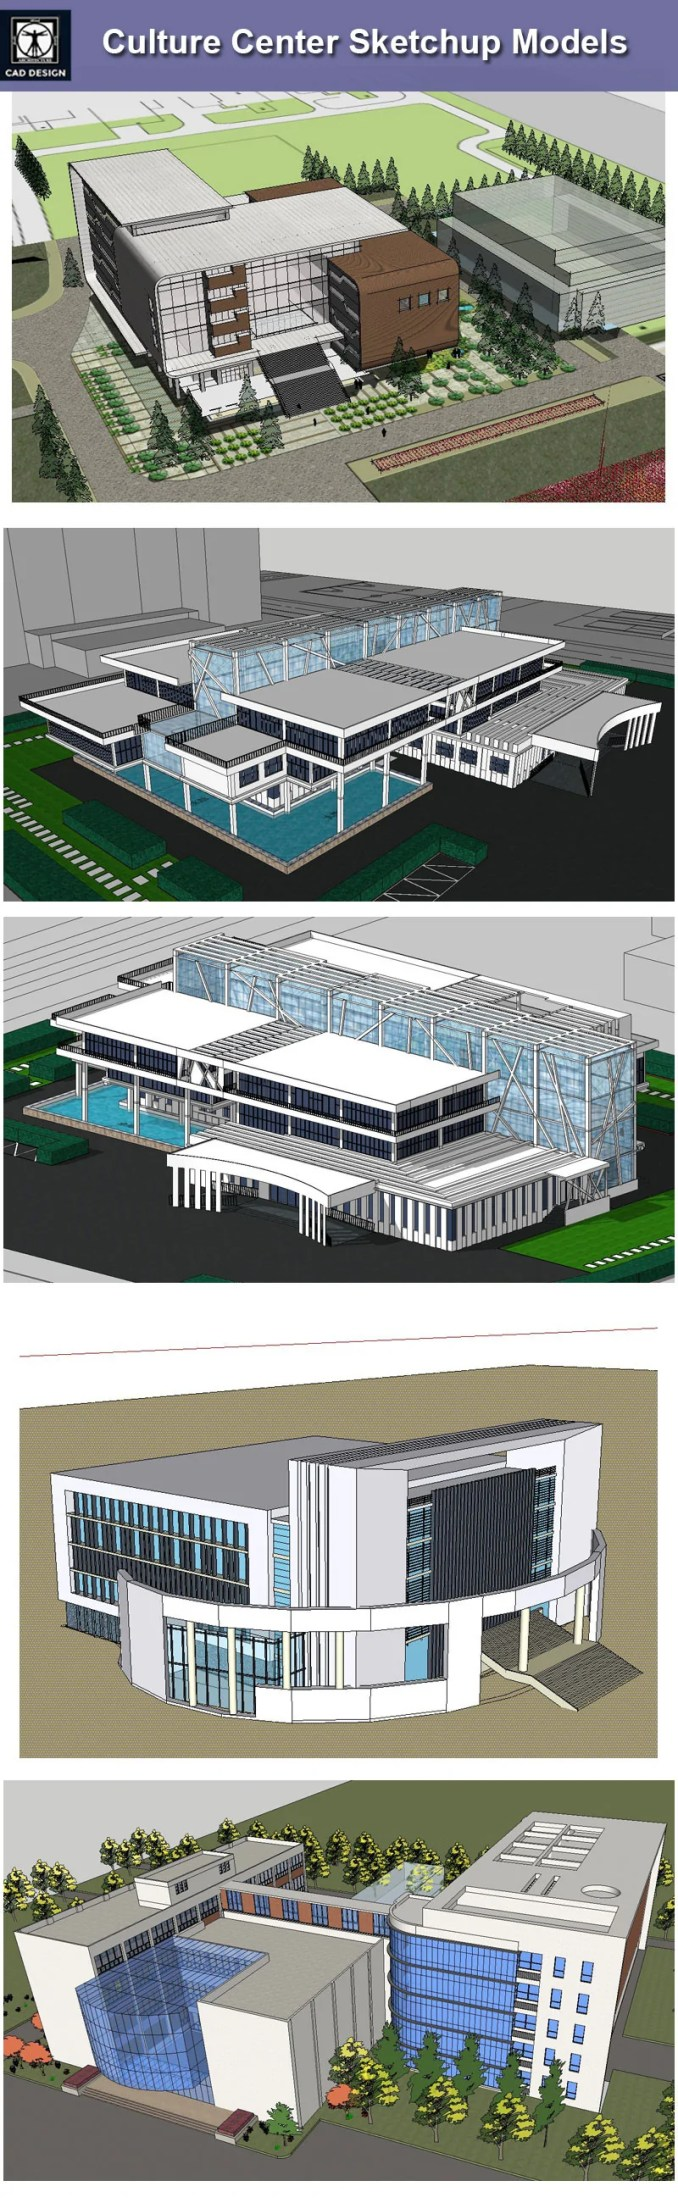 Download 15 Culture Center Sketchup Models】 (Recommanded!!) – Free